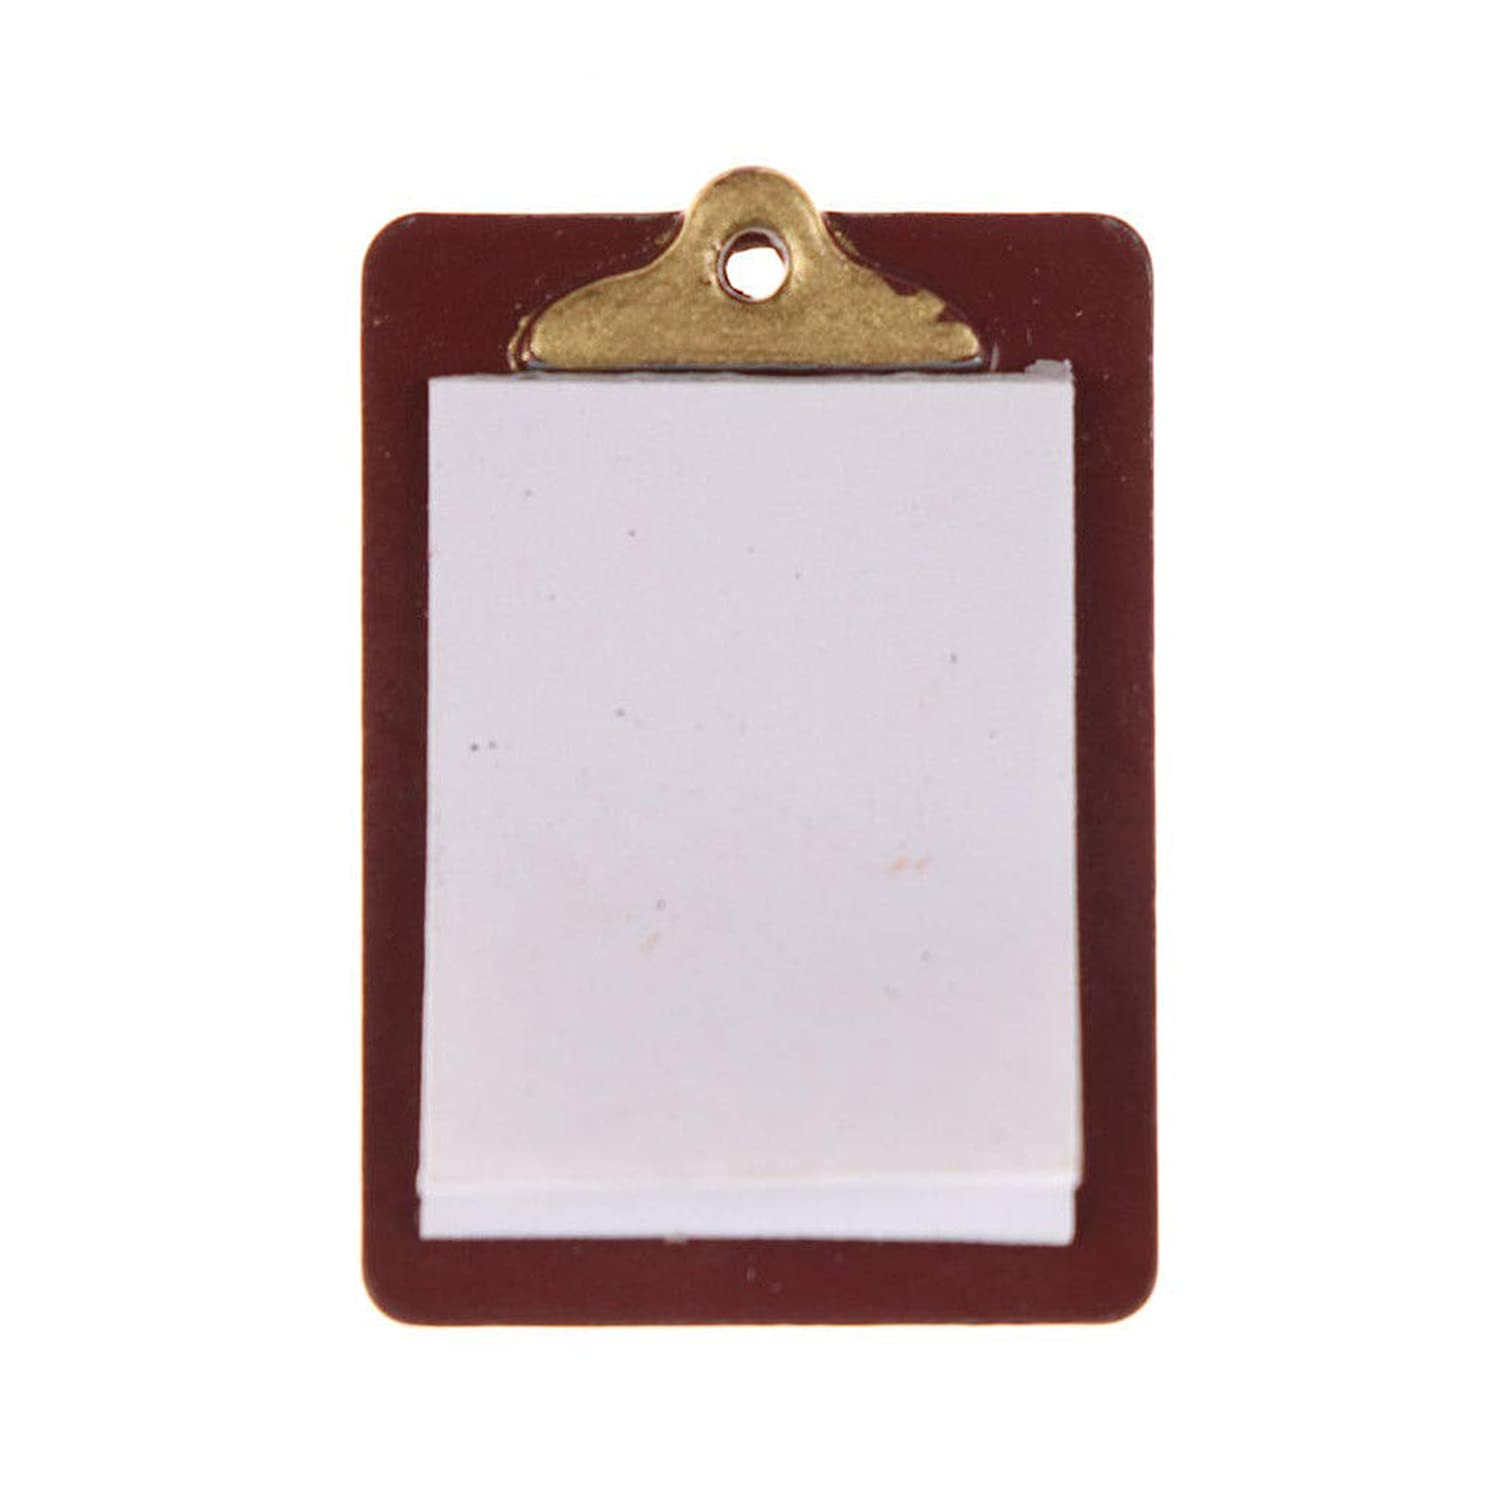 Mini Paper Clipboard for Dollhouse Playhouse Sale SALE% OFF – and Décor 2021new shipping free shipping